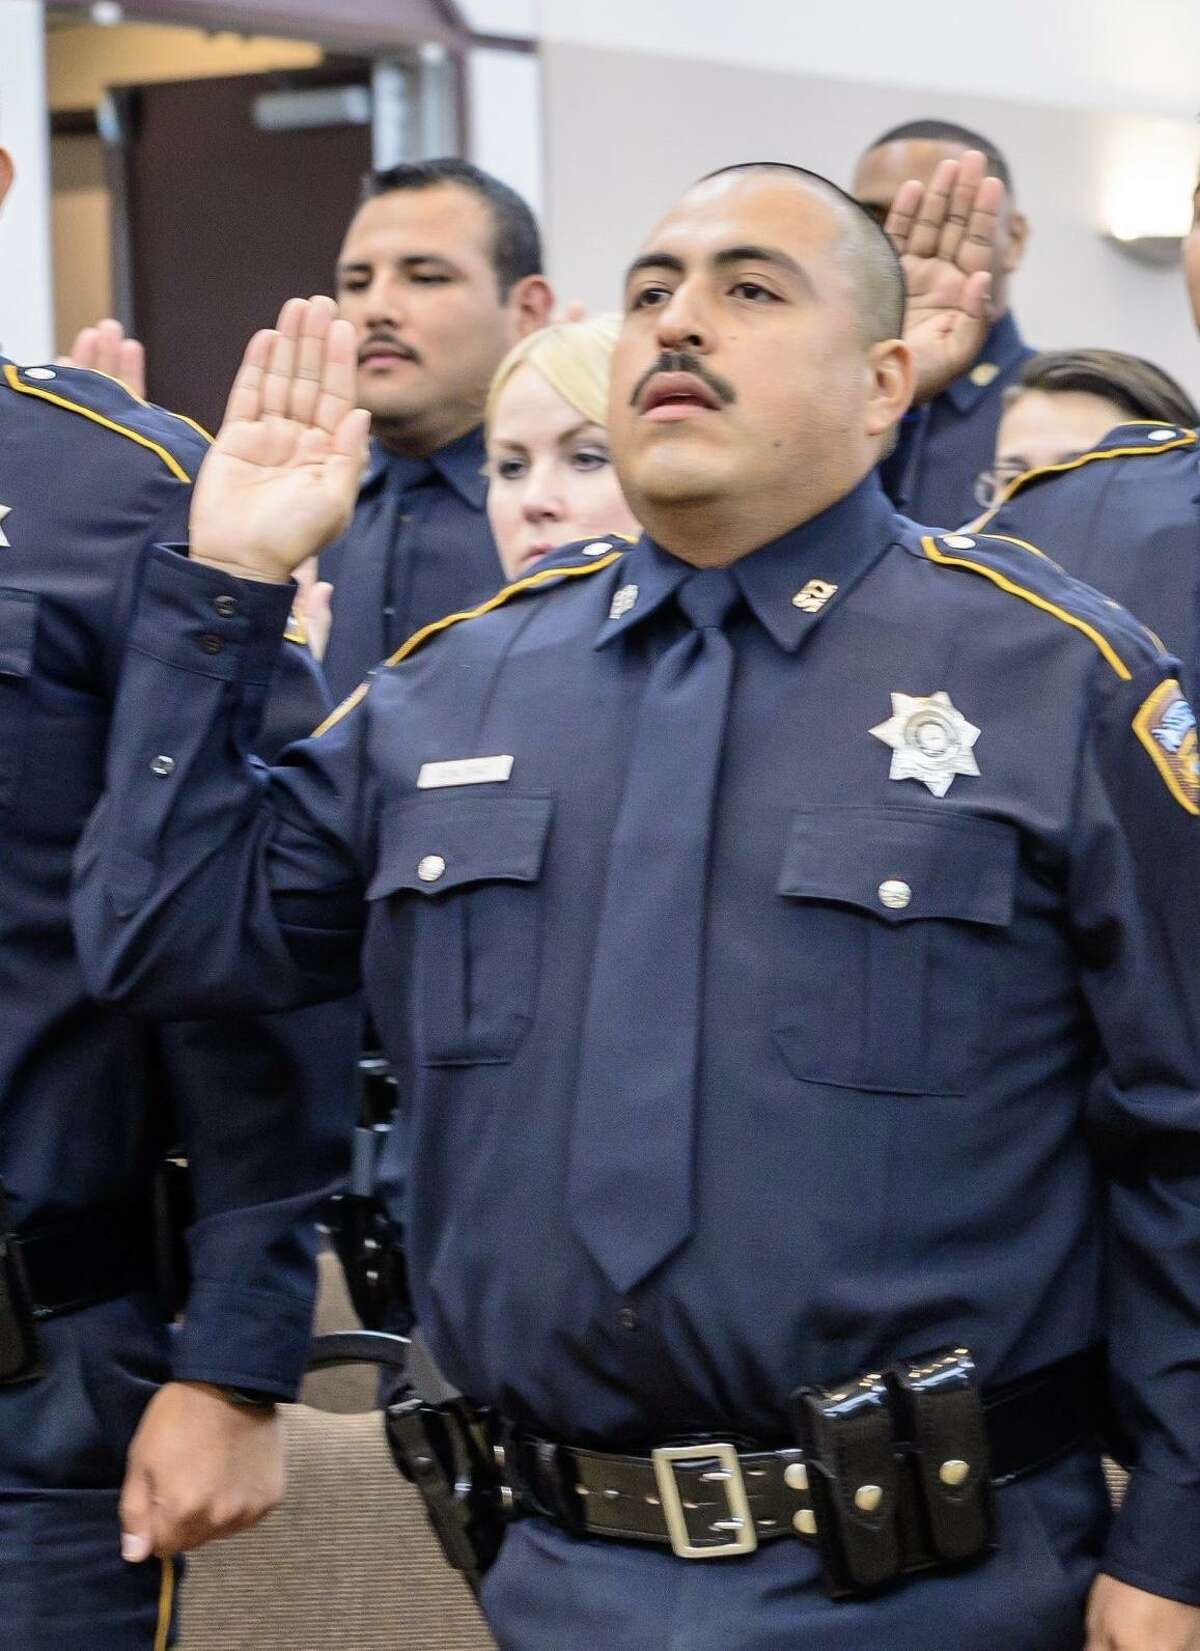 Harris County Sheriff's Office deputy Omar Diaz Died: Saturday, July 6, 2019 Diaz was putting up crime scene tape when he collapsed. It was later determined that Diaz suffered a pulmonary embolism. He was survived by his wife and daughter.